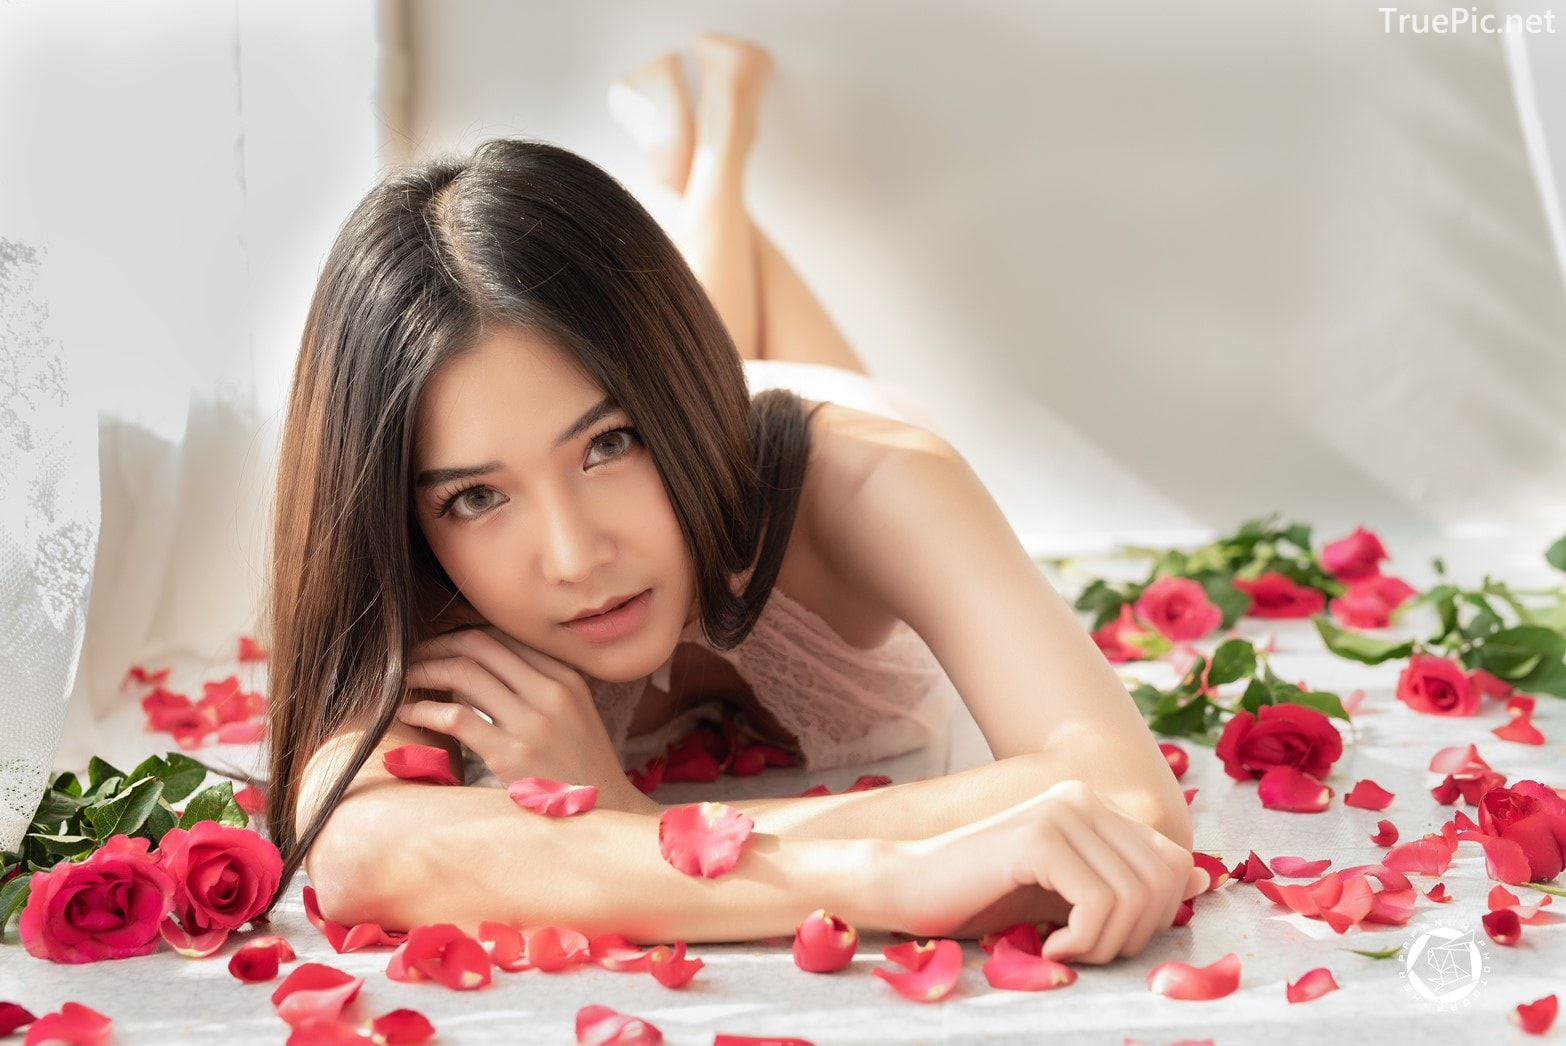 Thailand Model - Phitchamol Srijantanet - Roses for Lovers - TruePic.net - Picture 1